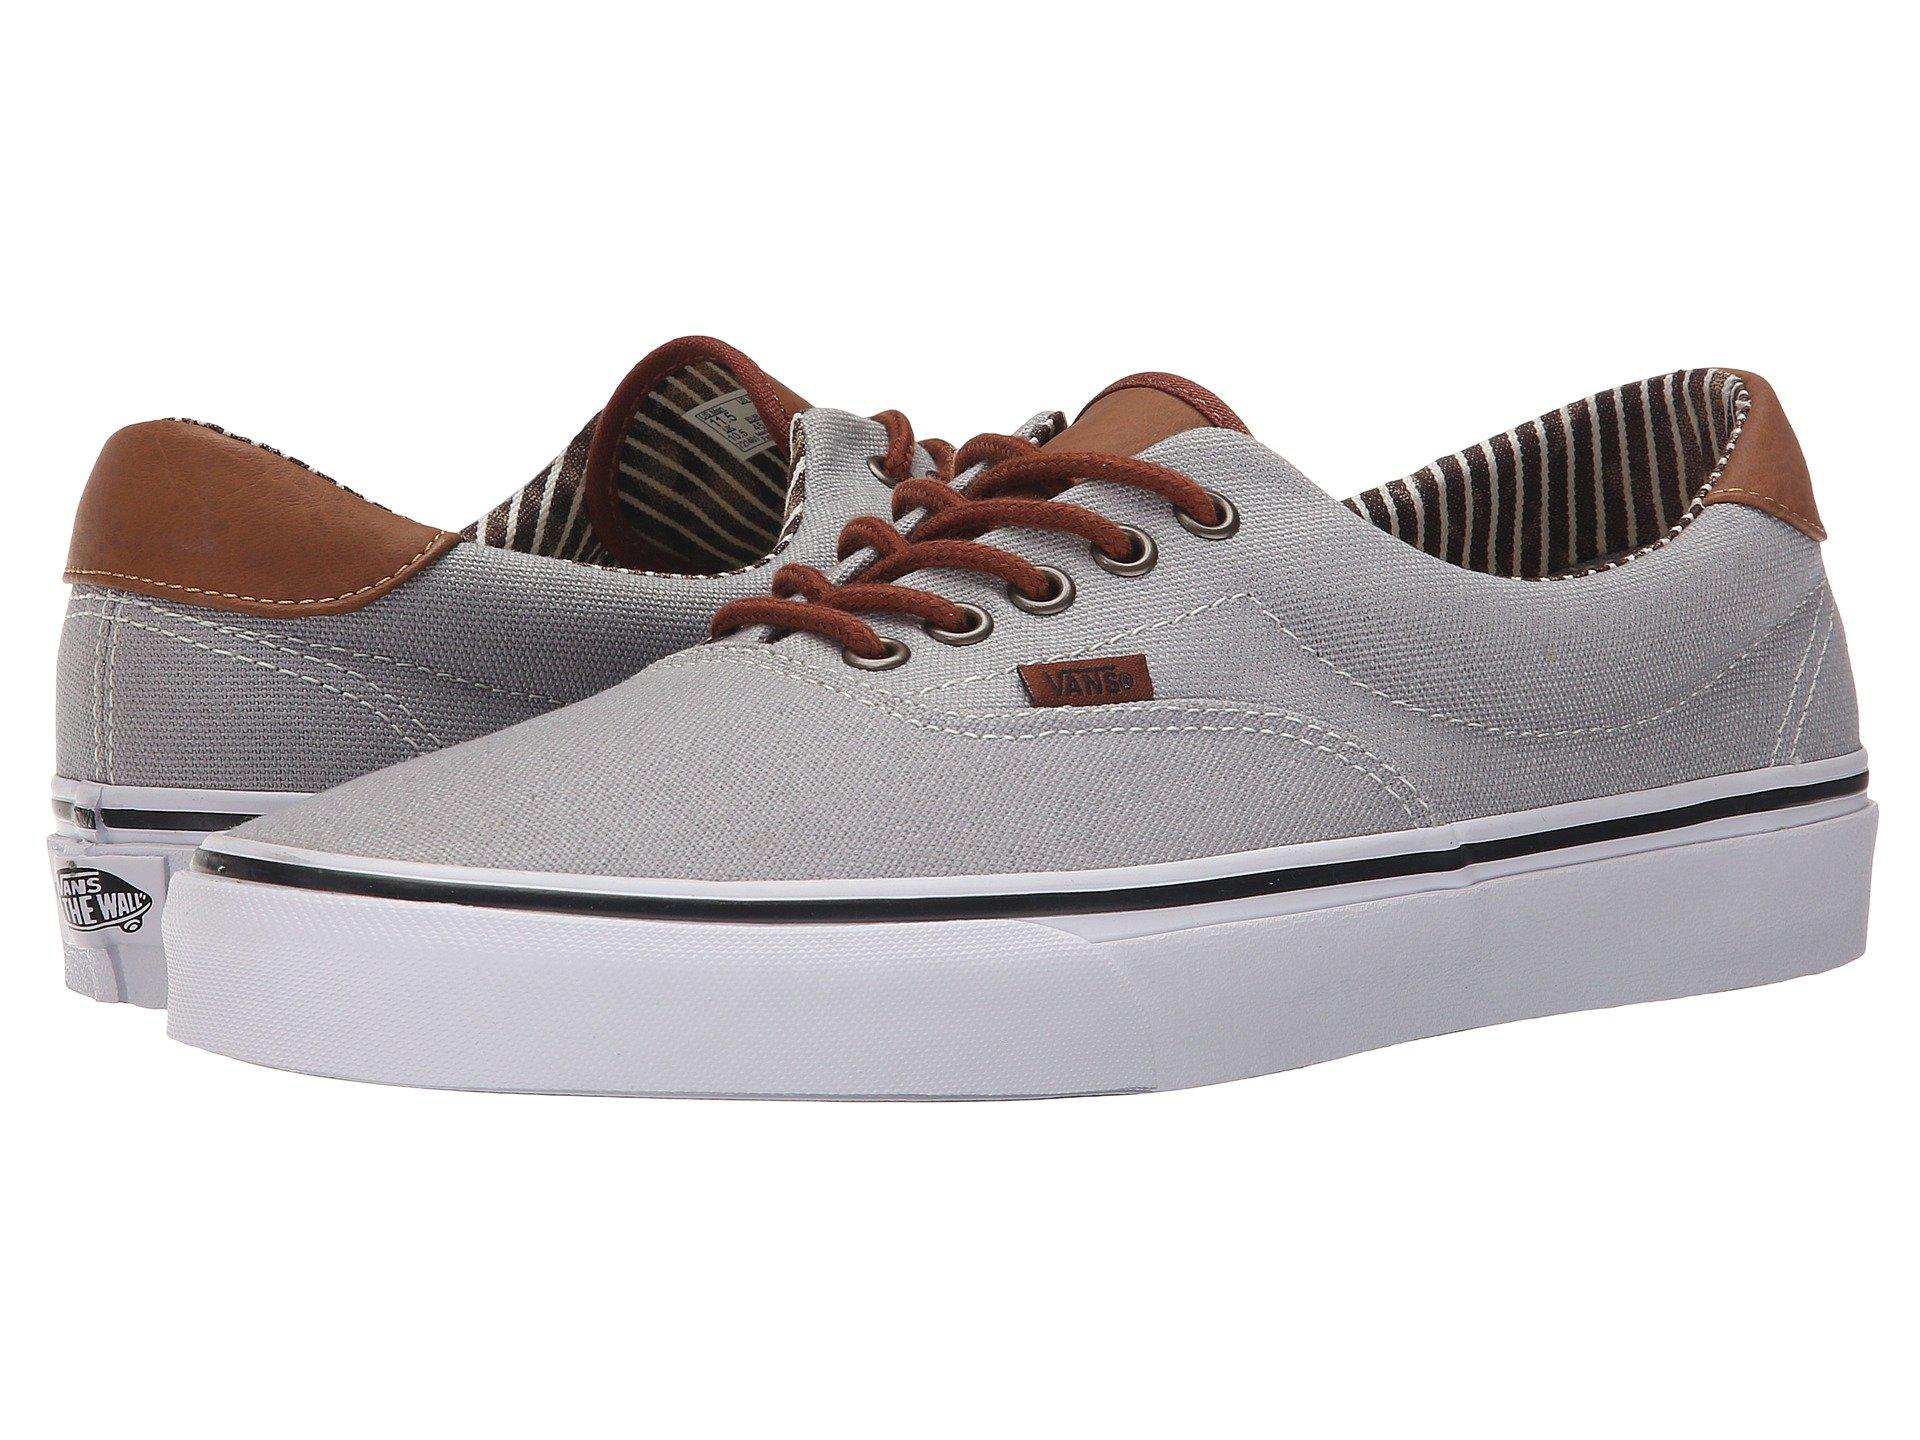 8b6103a1f06e84 Lyst - Vans Era 59 ((c l) Frost Gray acid Denim) Skate Shoes in Metallic